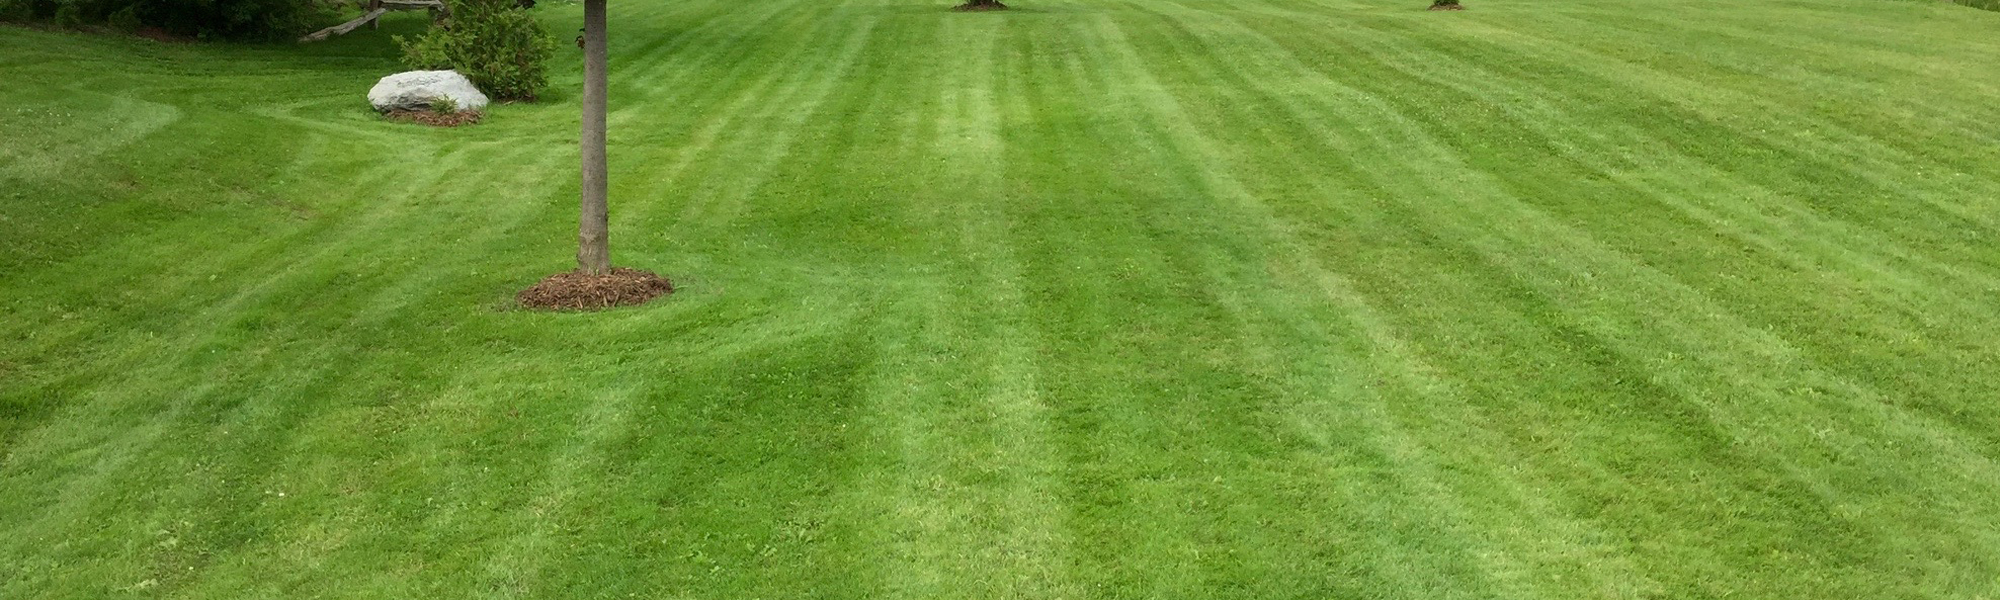 Lawn Mowing Stripes in Stayner, ON